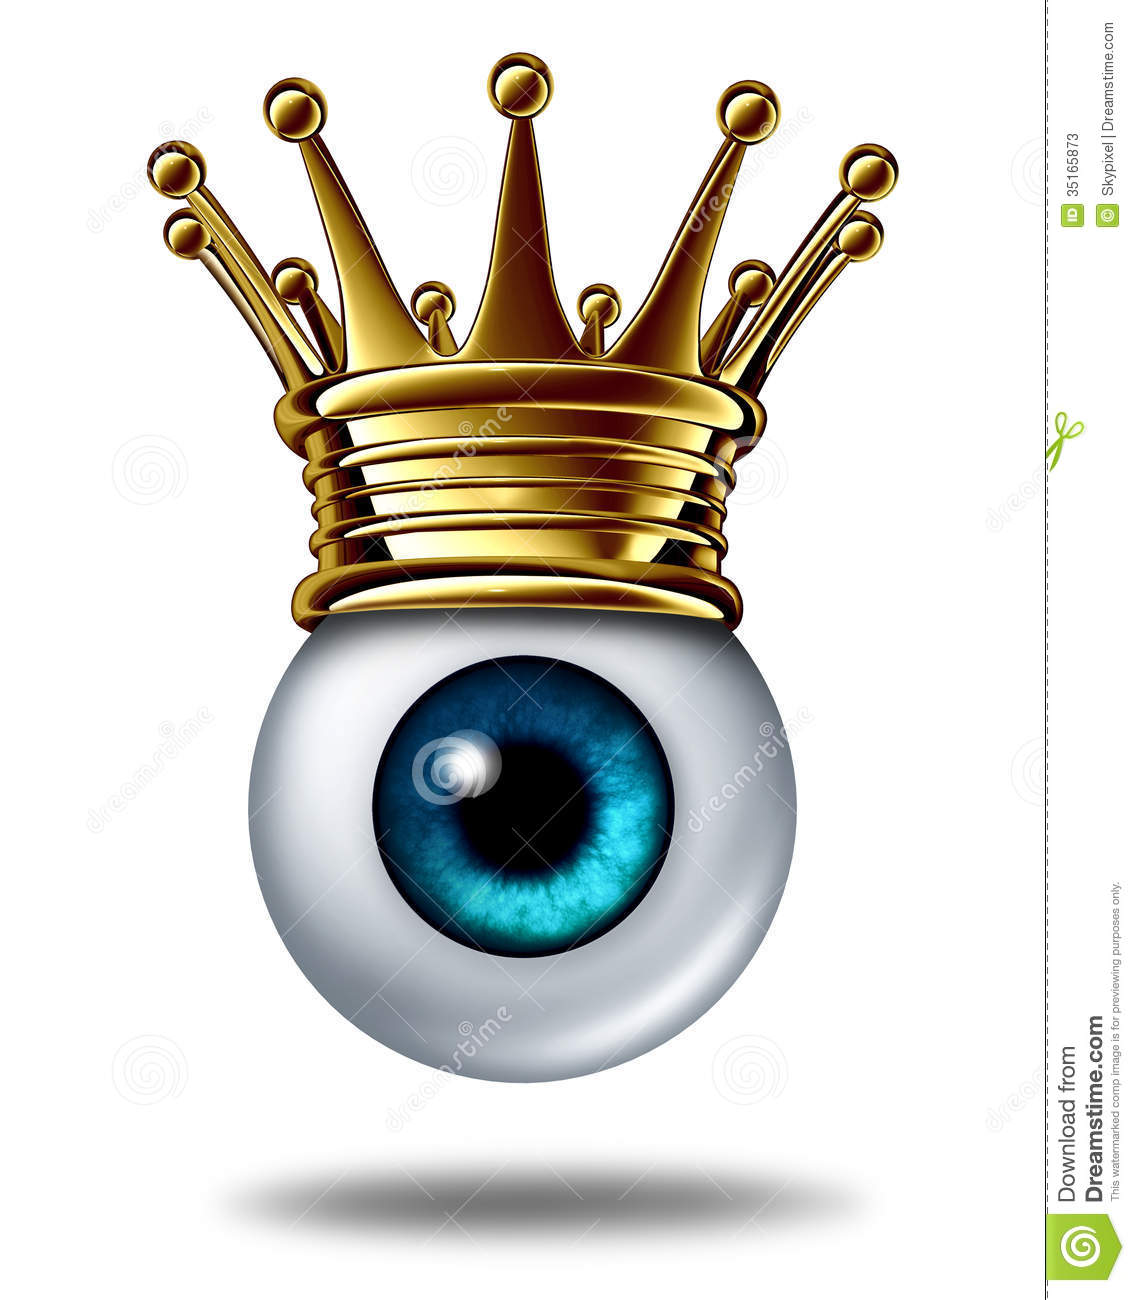 ... eyeball wearing a gold crown on a white background as an icon of